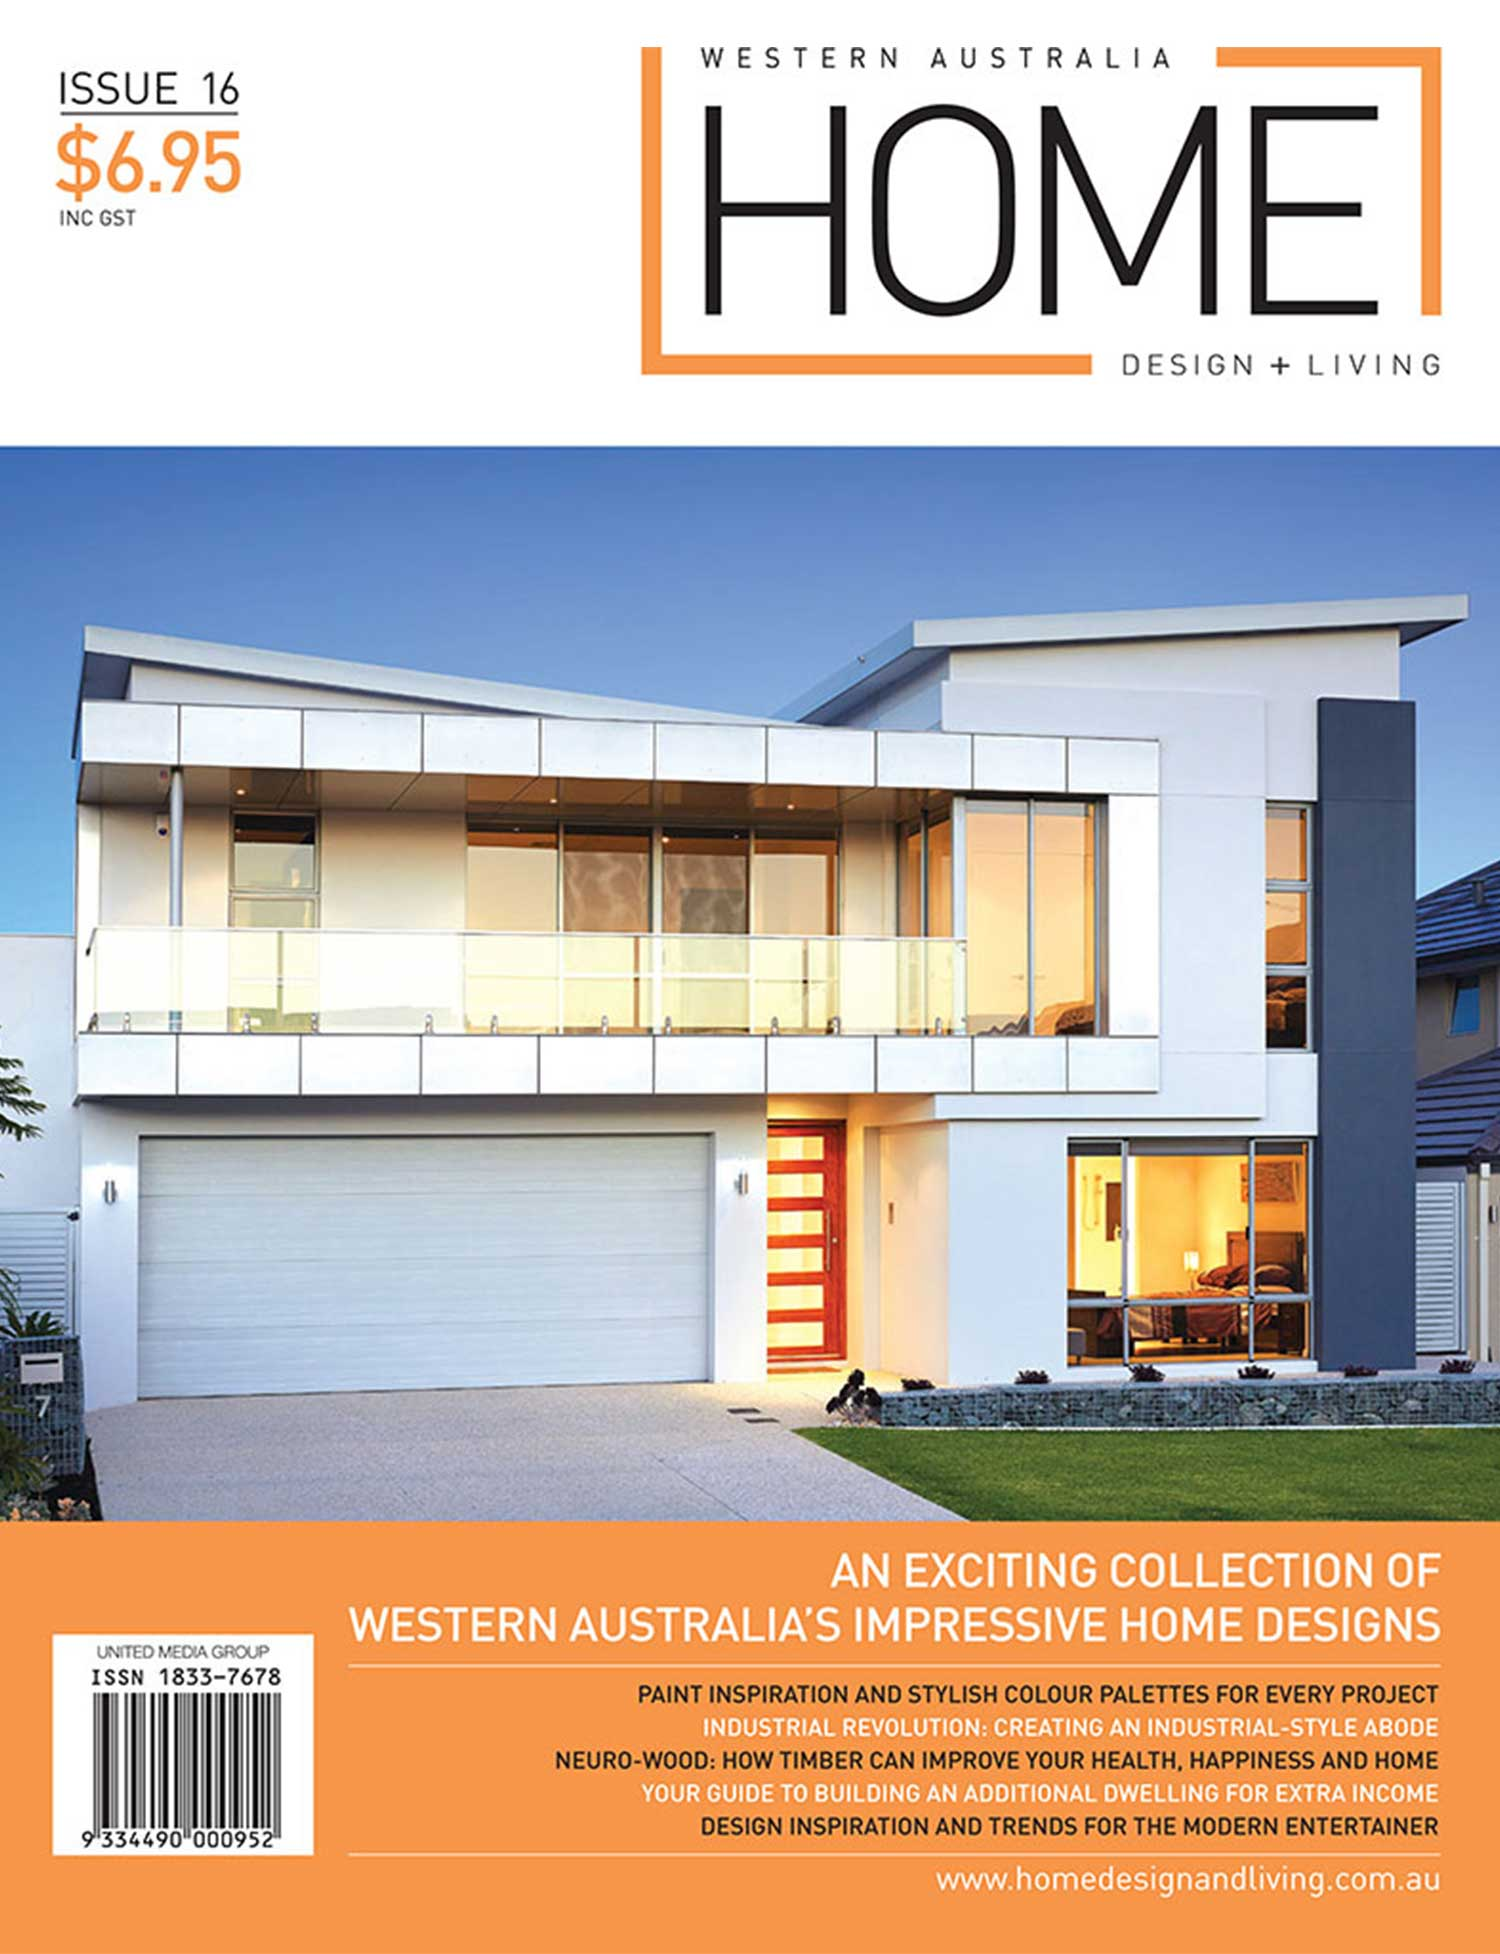 Western Australia Home Design and Living